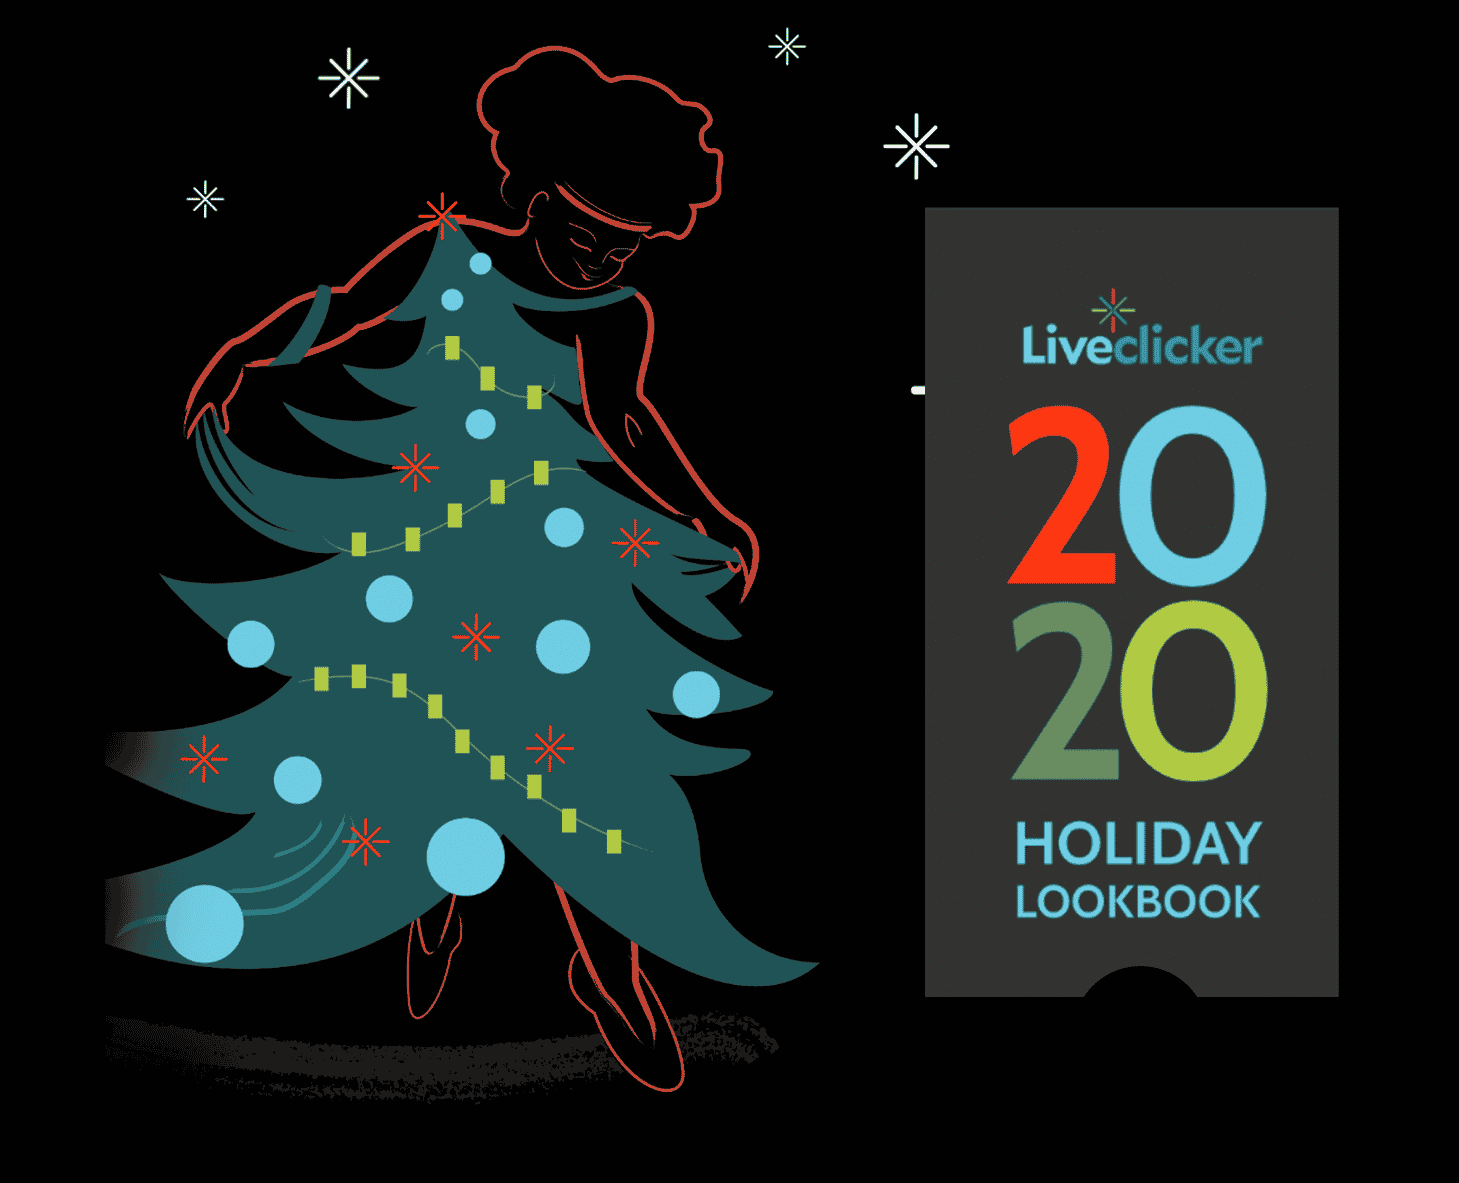 2020 Holiday Lookbook: Essential Personalization Tactics to Reinvent the Retail Season